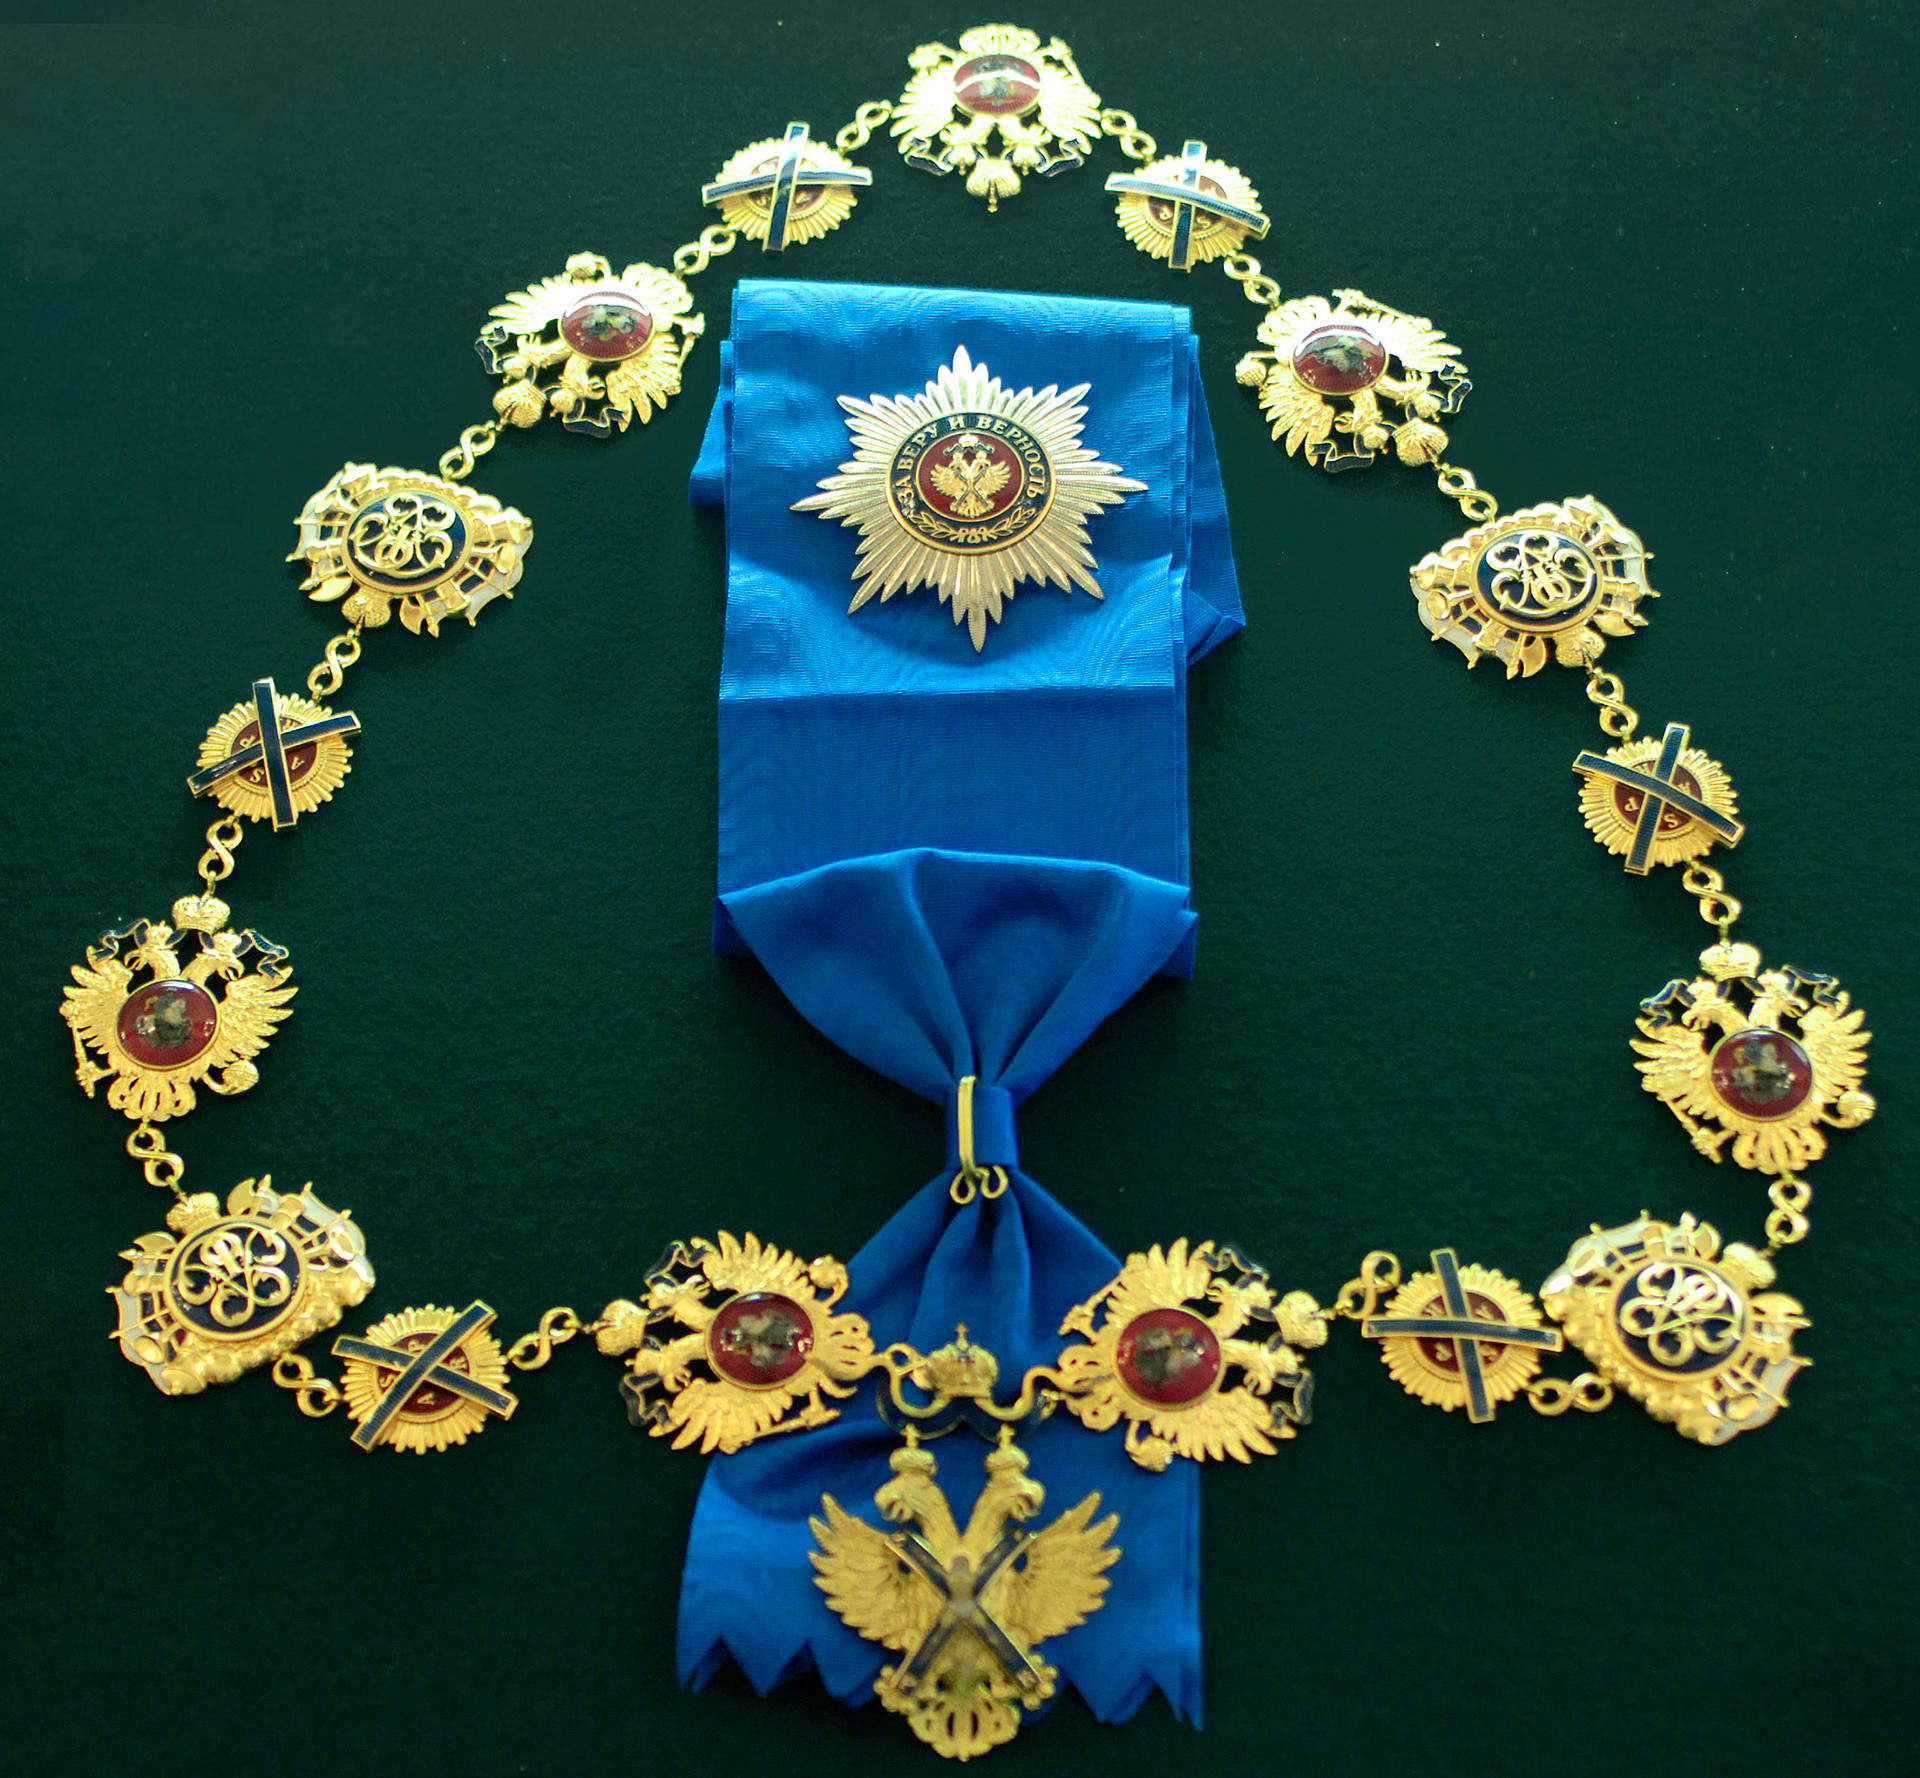 The Order of St. Andrew the Apostle the First-Called, the highest state decoration in Russia